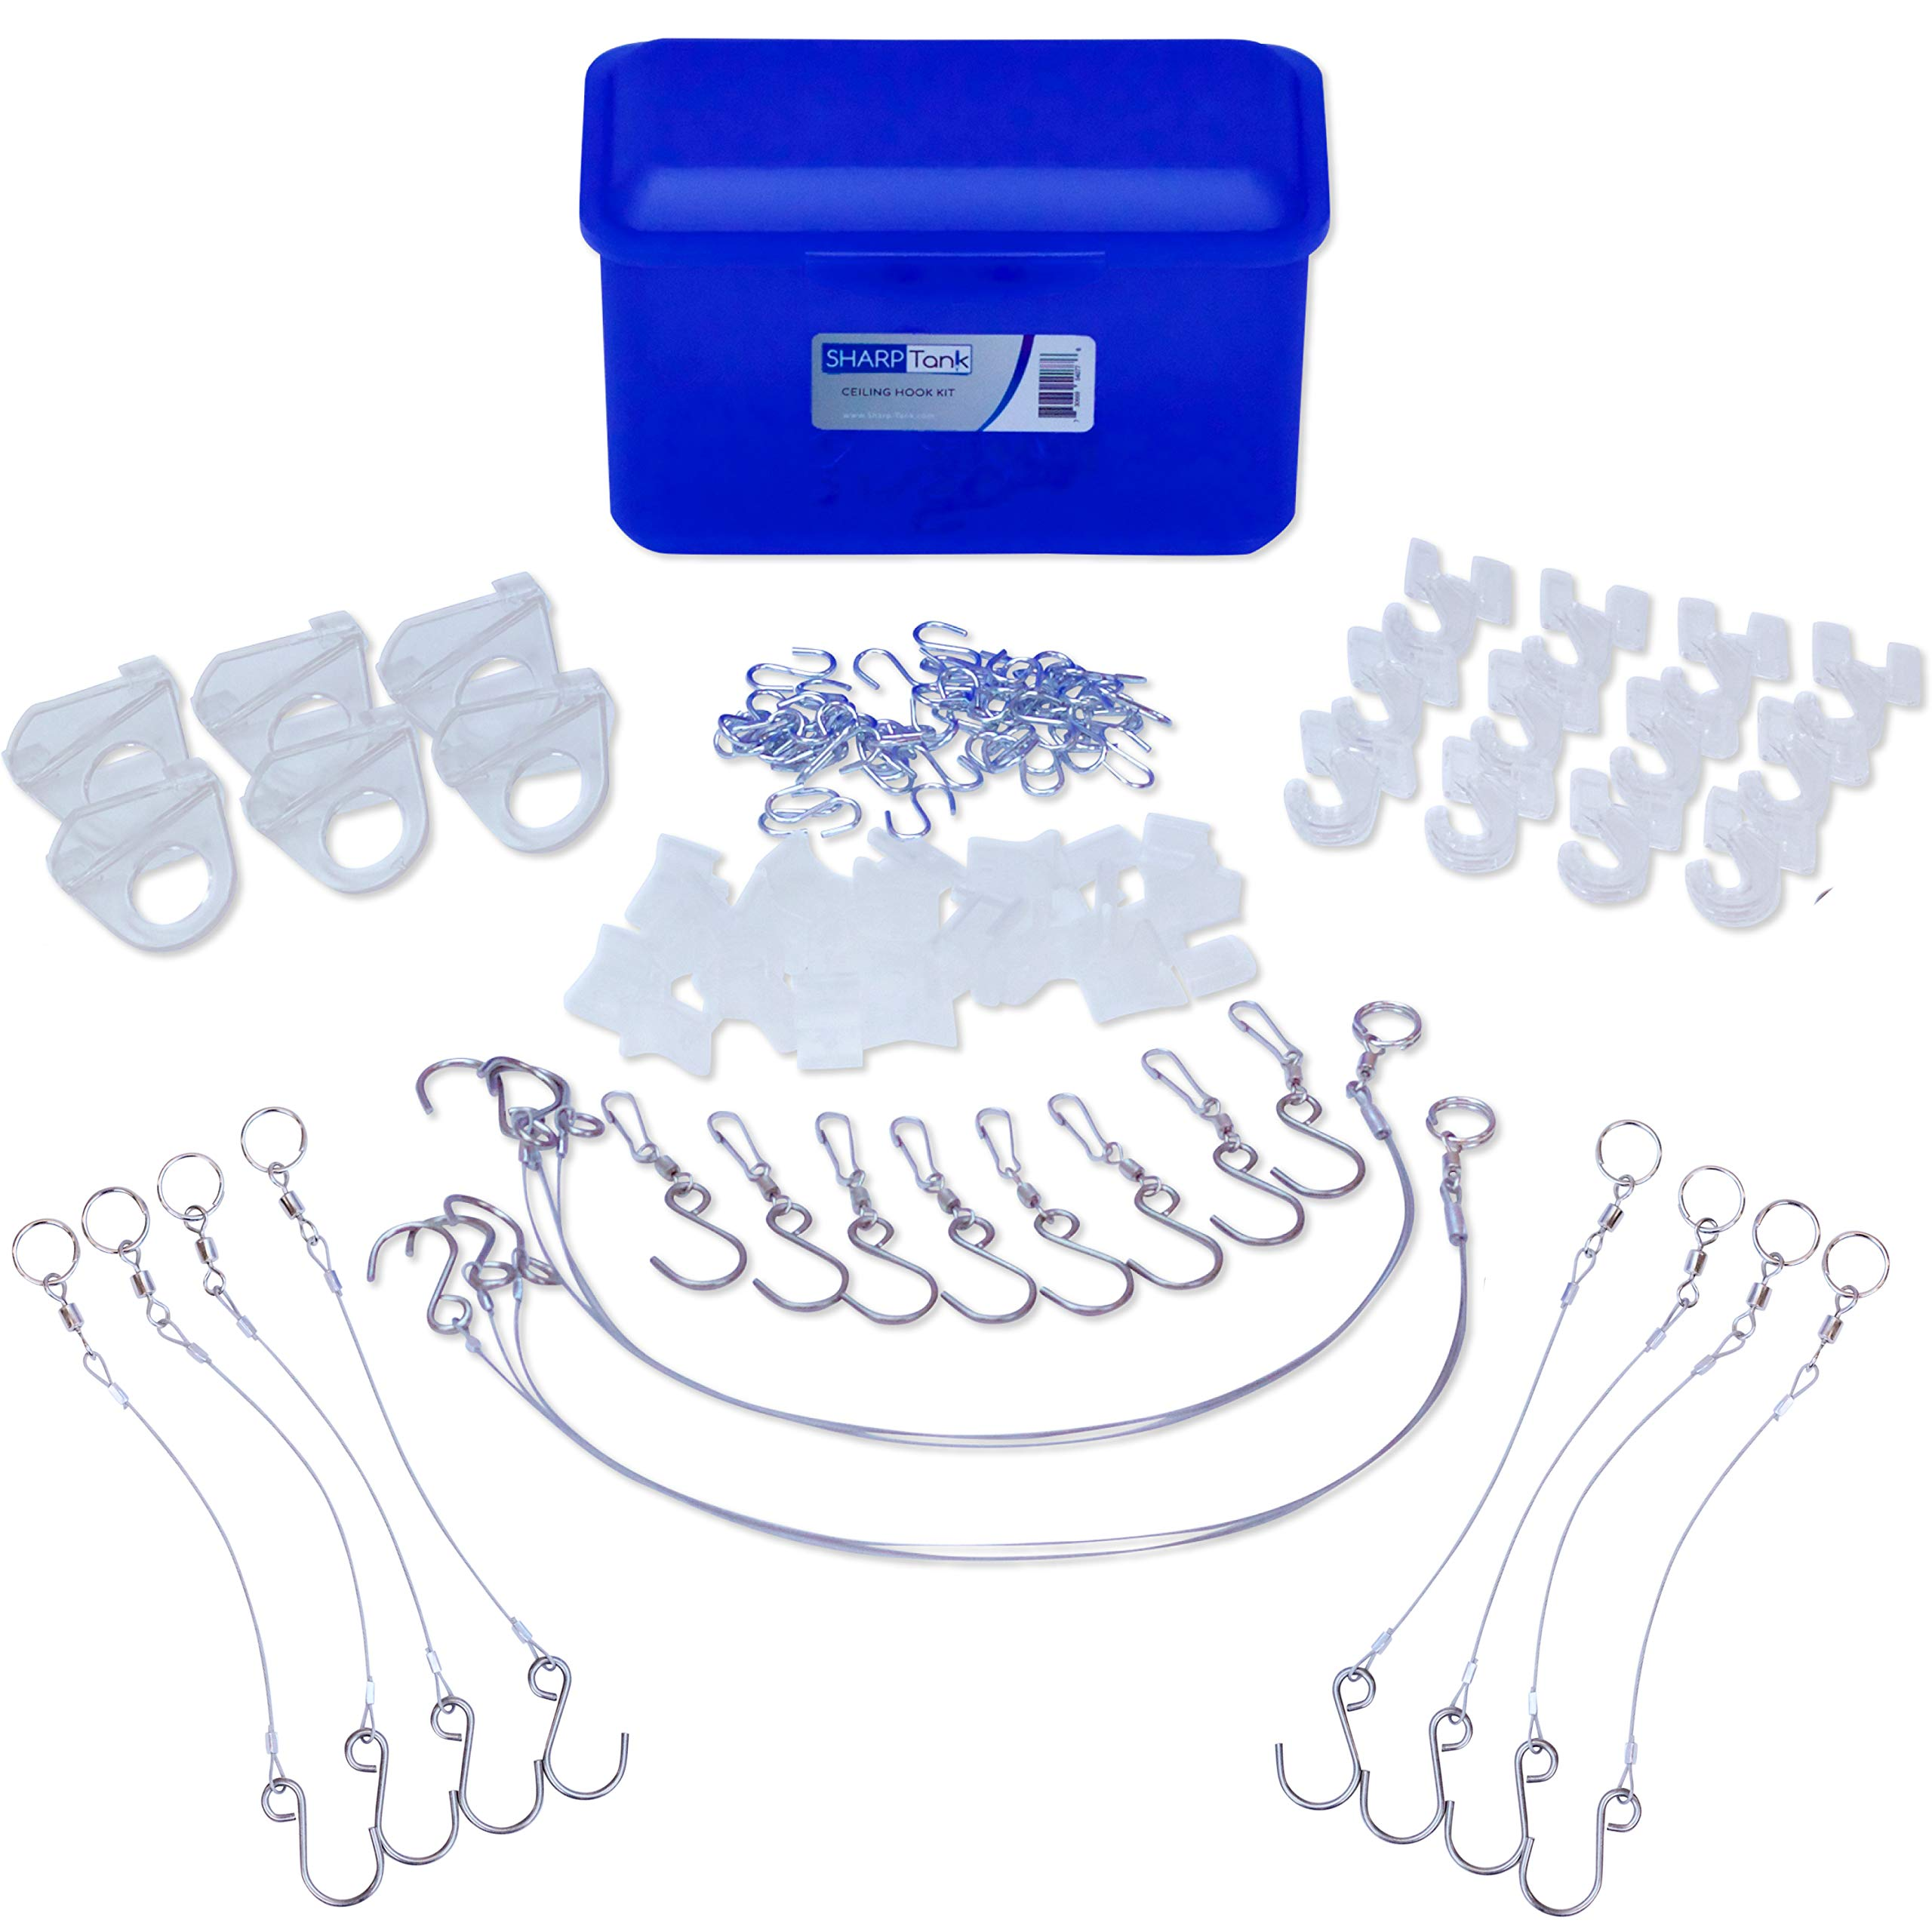 Sharp Tank Ceiling Hook Kit - 110 Piece Assortment Includes Ceiling Hooks and Hangers with Clips Designed for Suspended Ceilings and Drop Ceilings